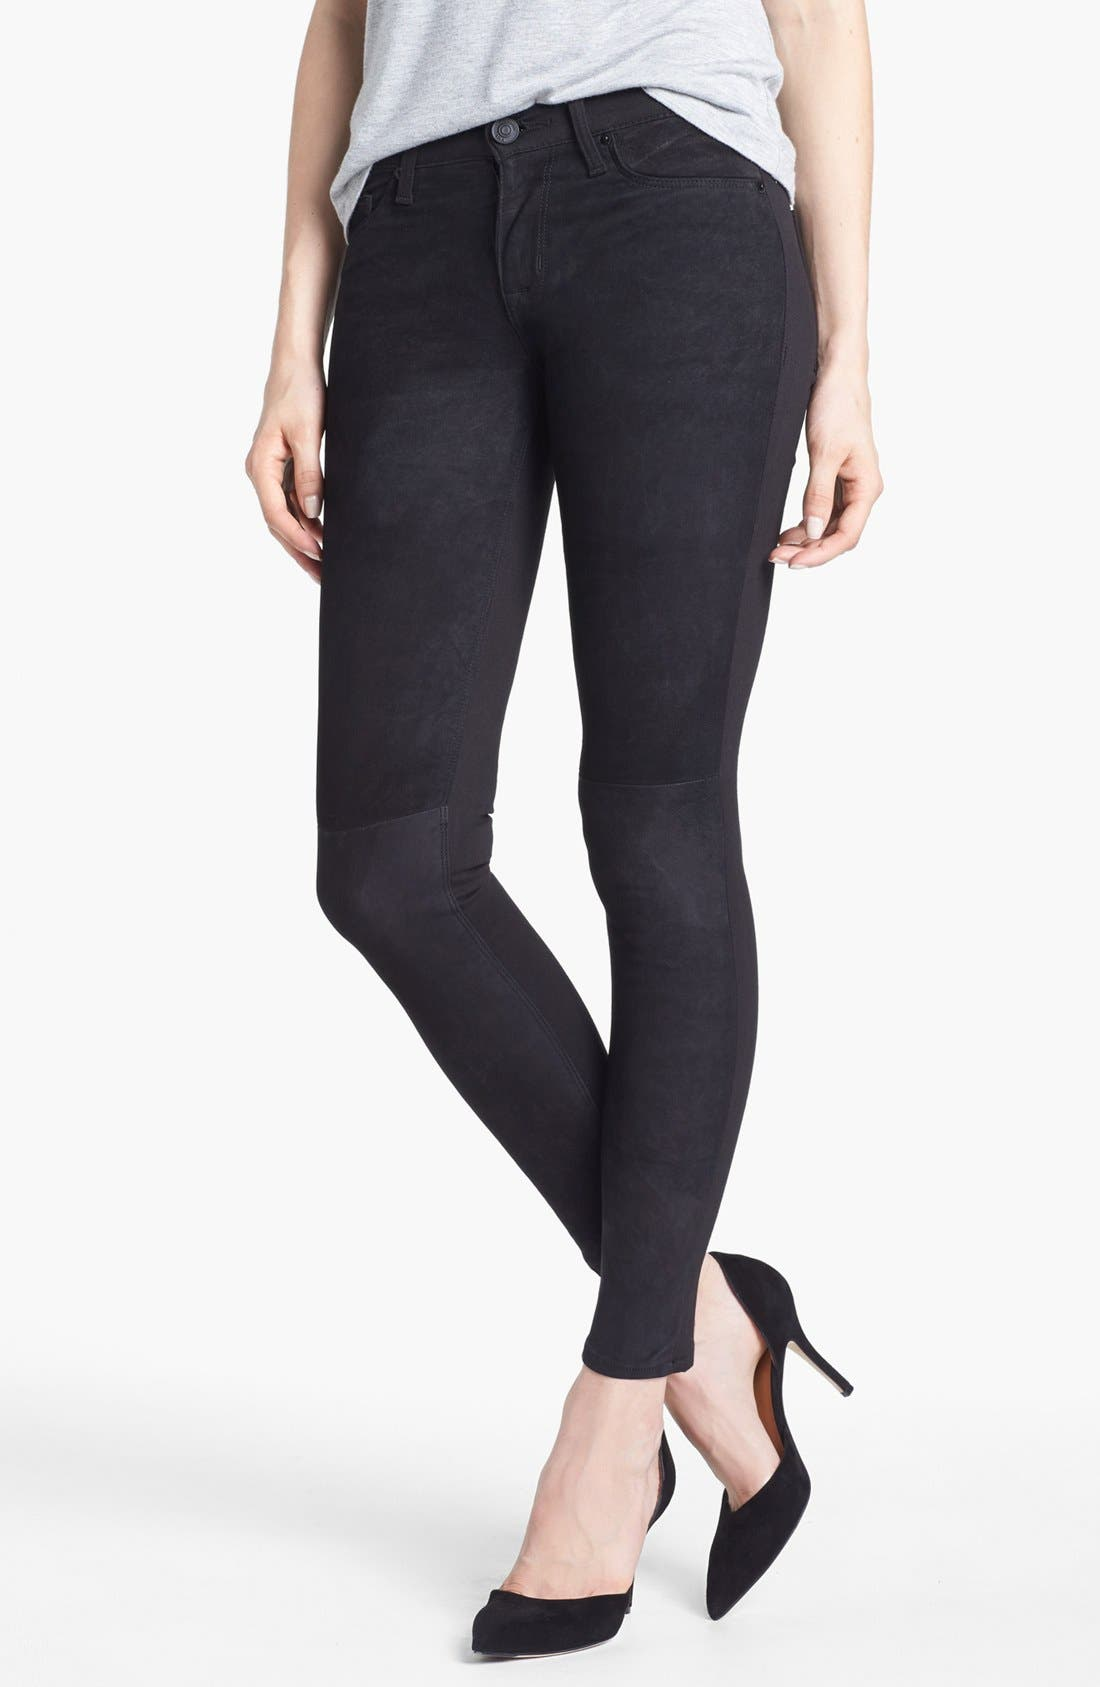 Main Image - Hudson Jeans 'Nico' Suede Front Mid Rise Skinny Jeans (Mirage)